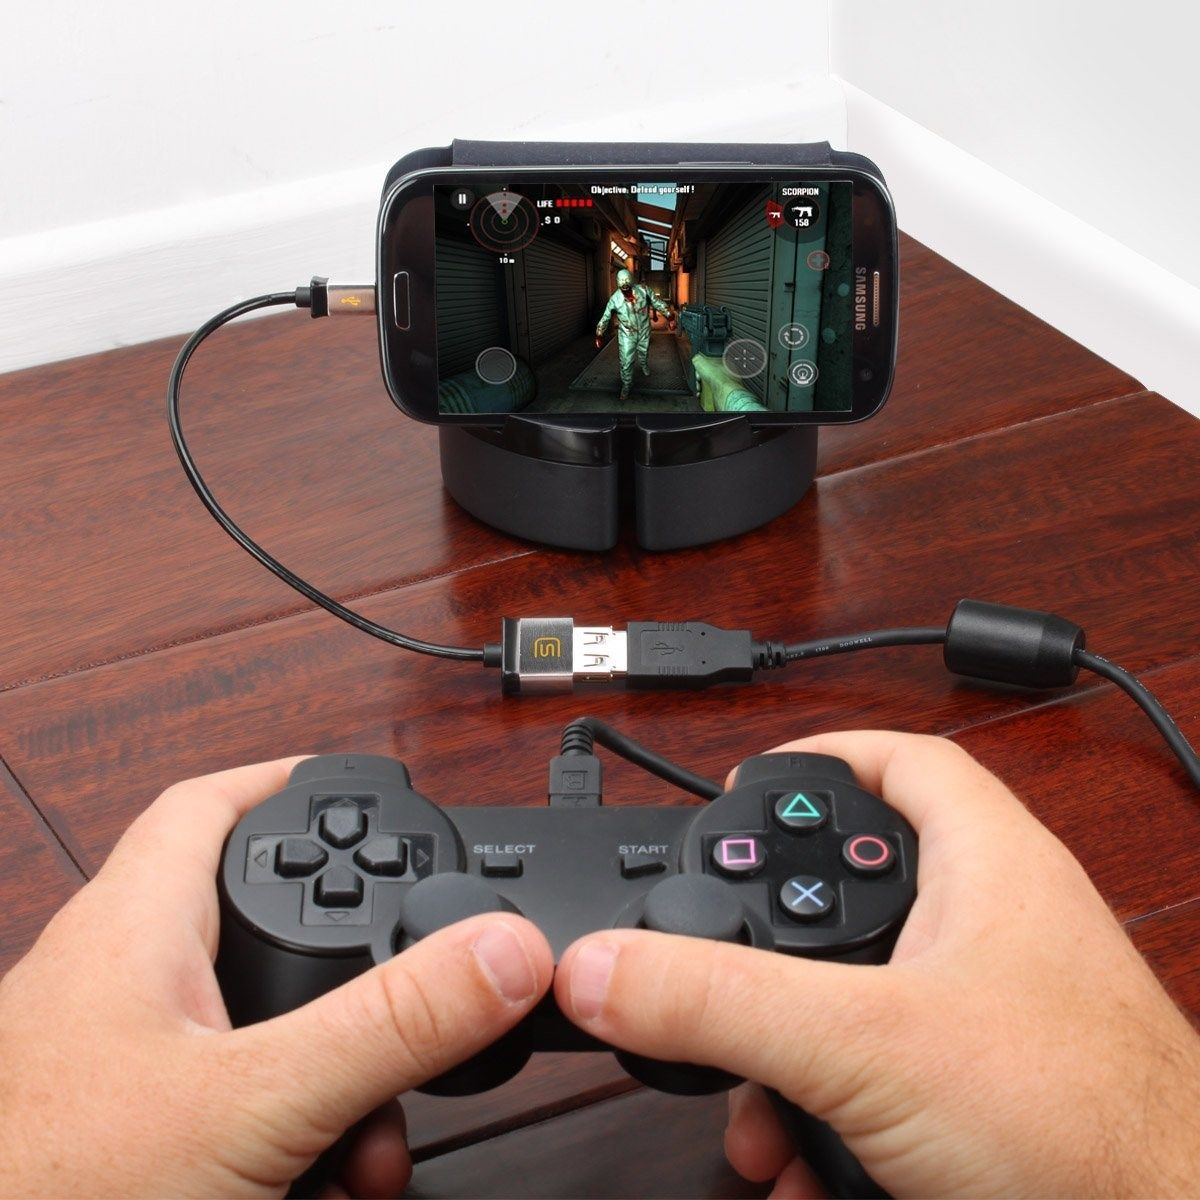 Micro USB OTG to USB 2.0 Host Cable Adapter for USB On-The-Go Compatible Devices to use with Universal PC USB Gaming Controllers